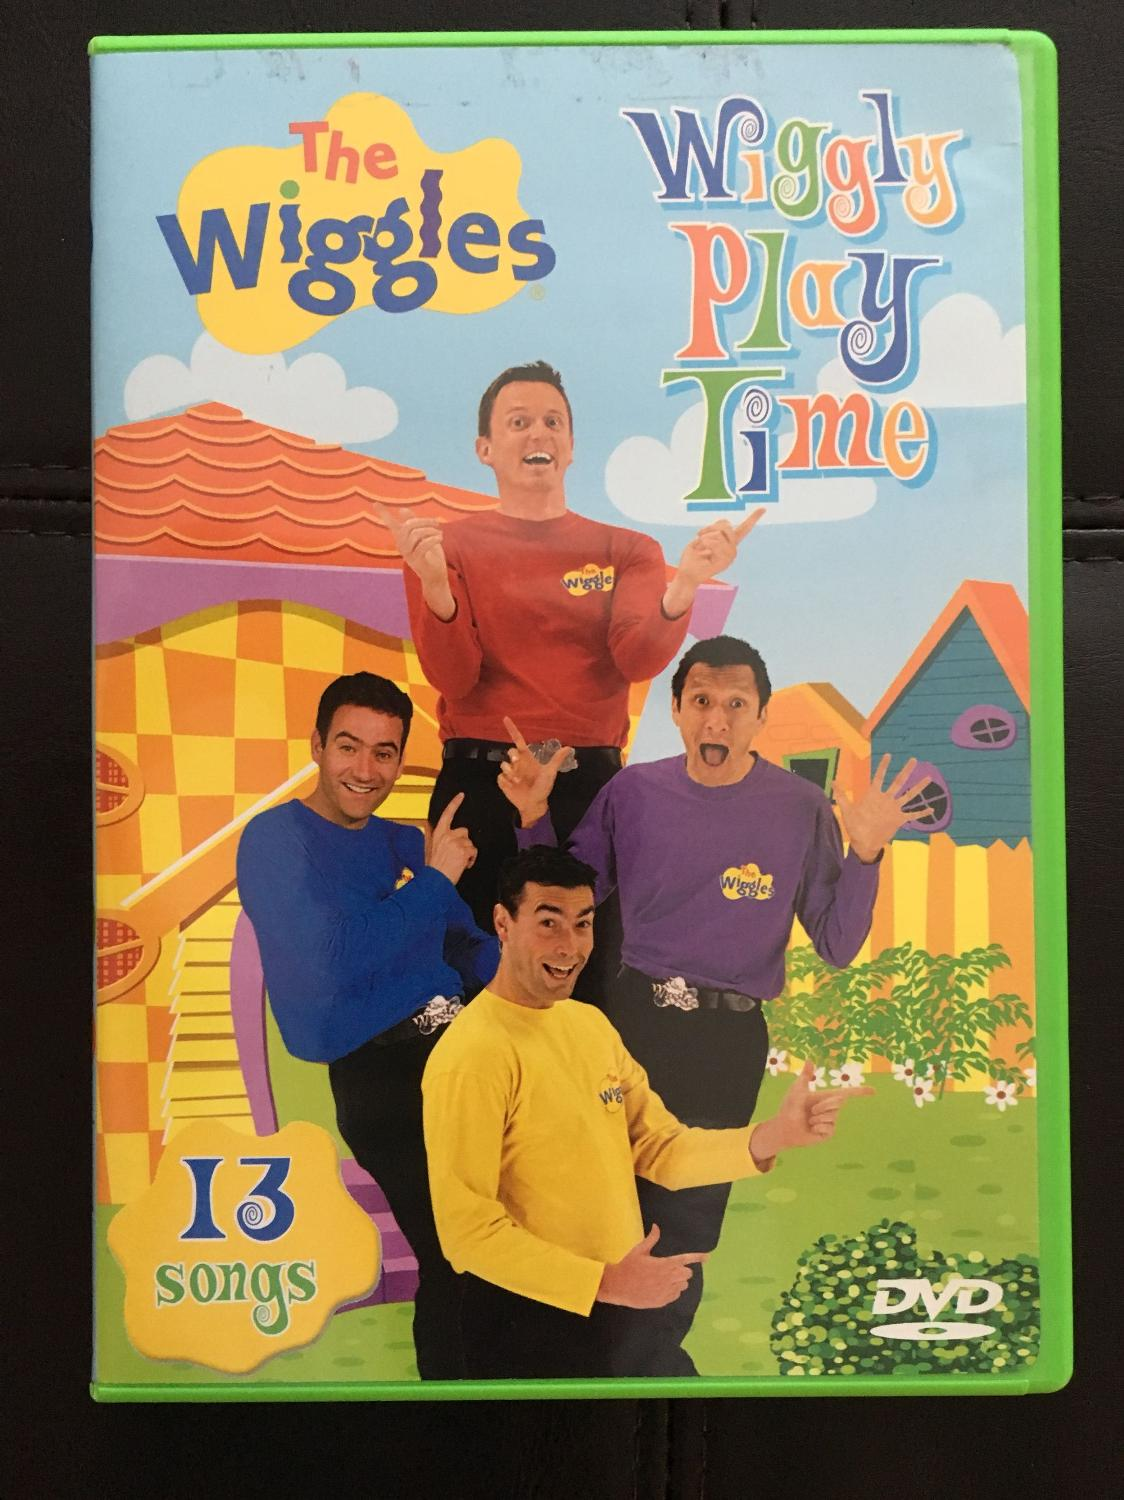 The Wiggles: Wiggly Play Time (2004 DVD)